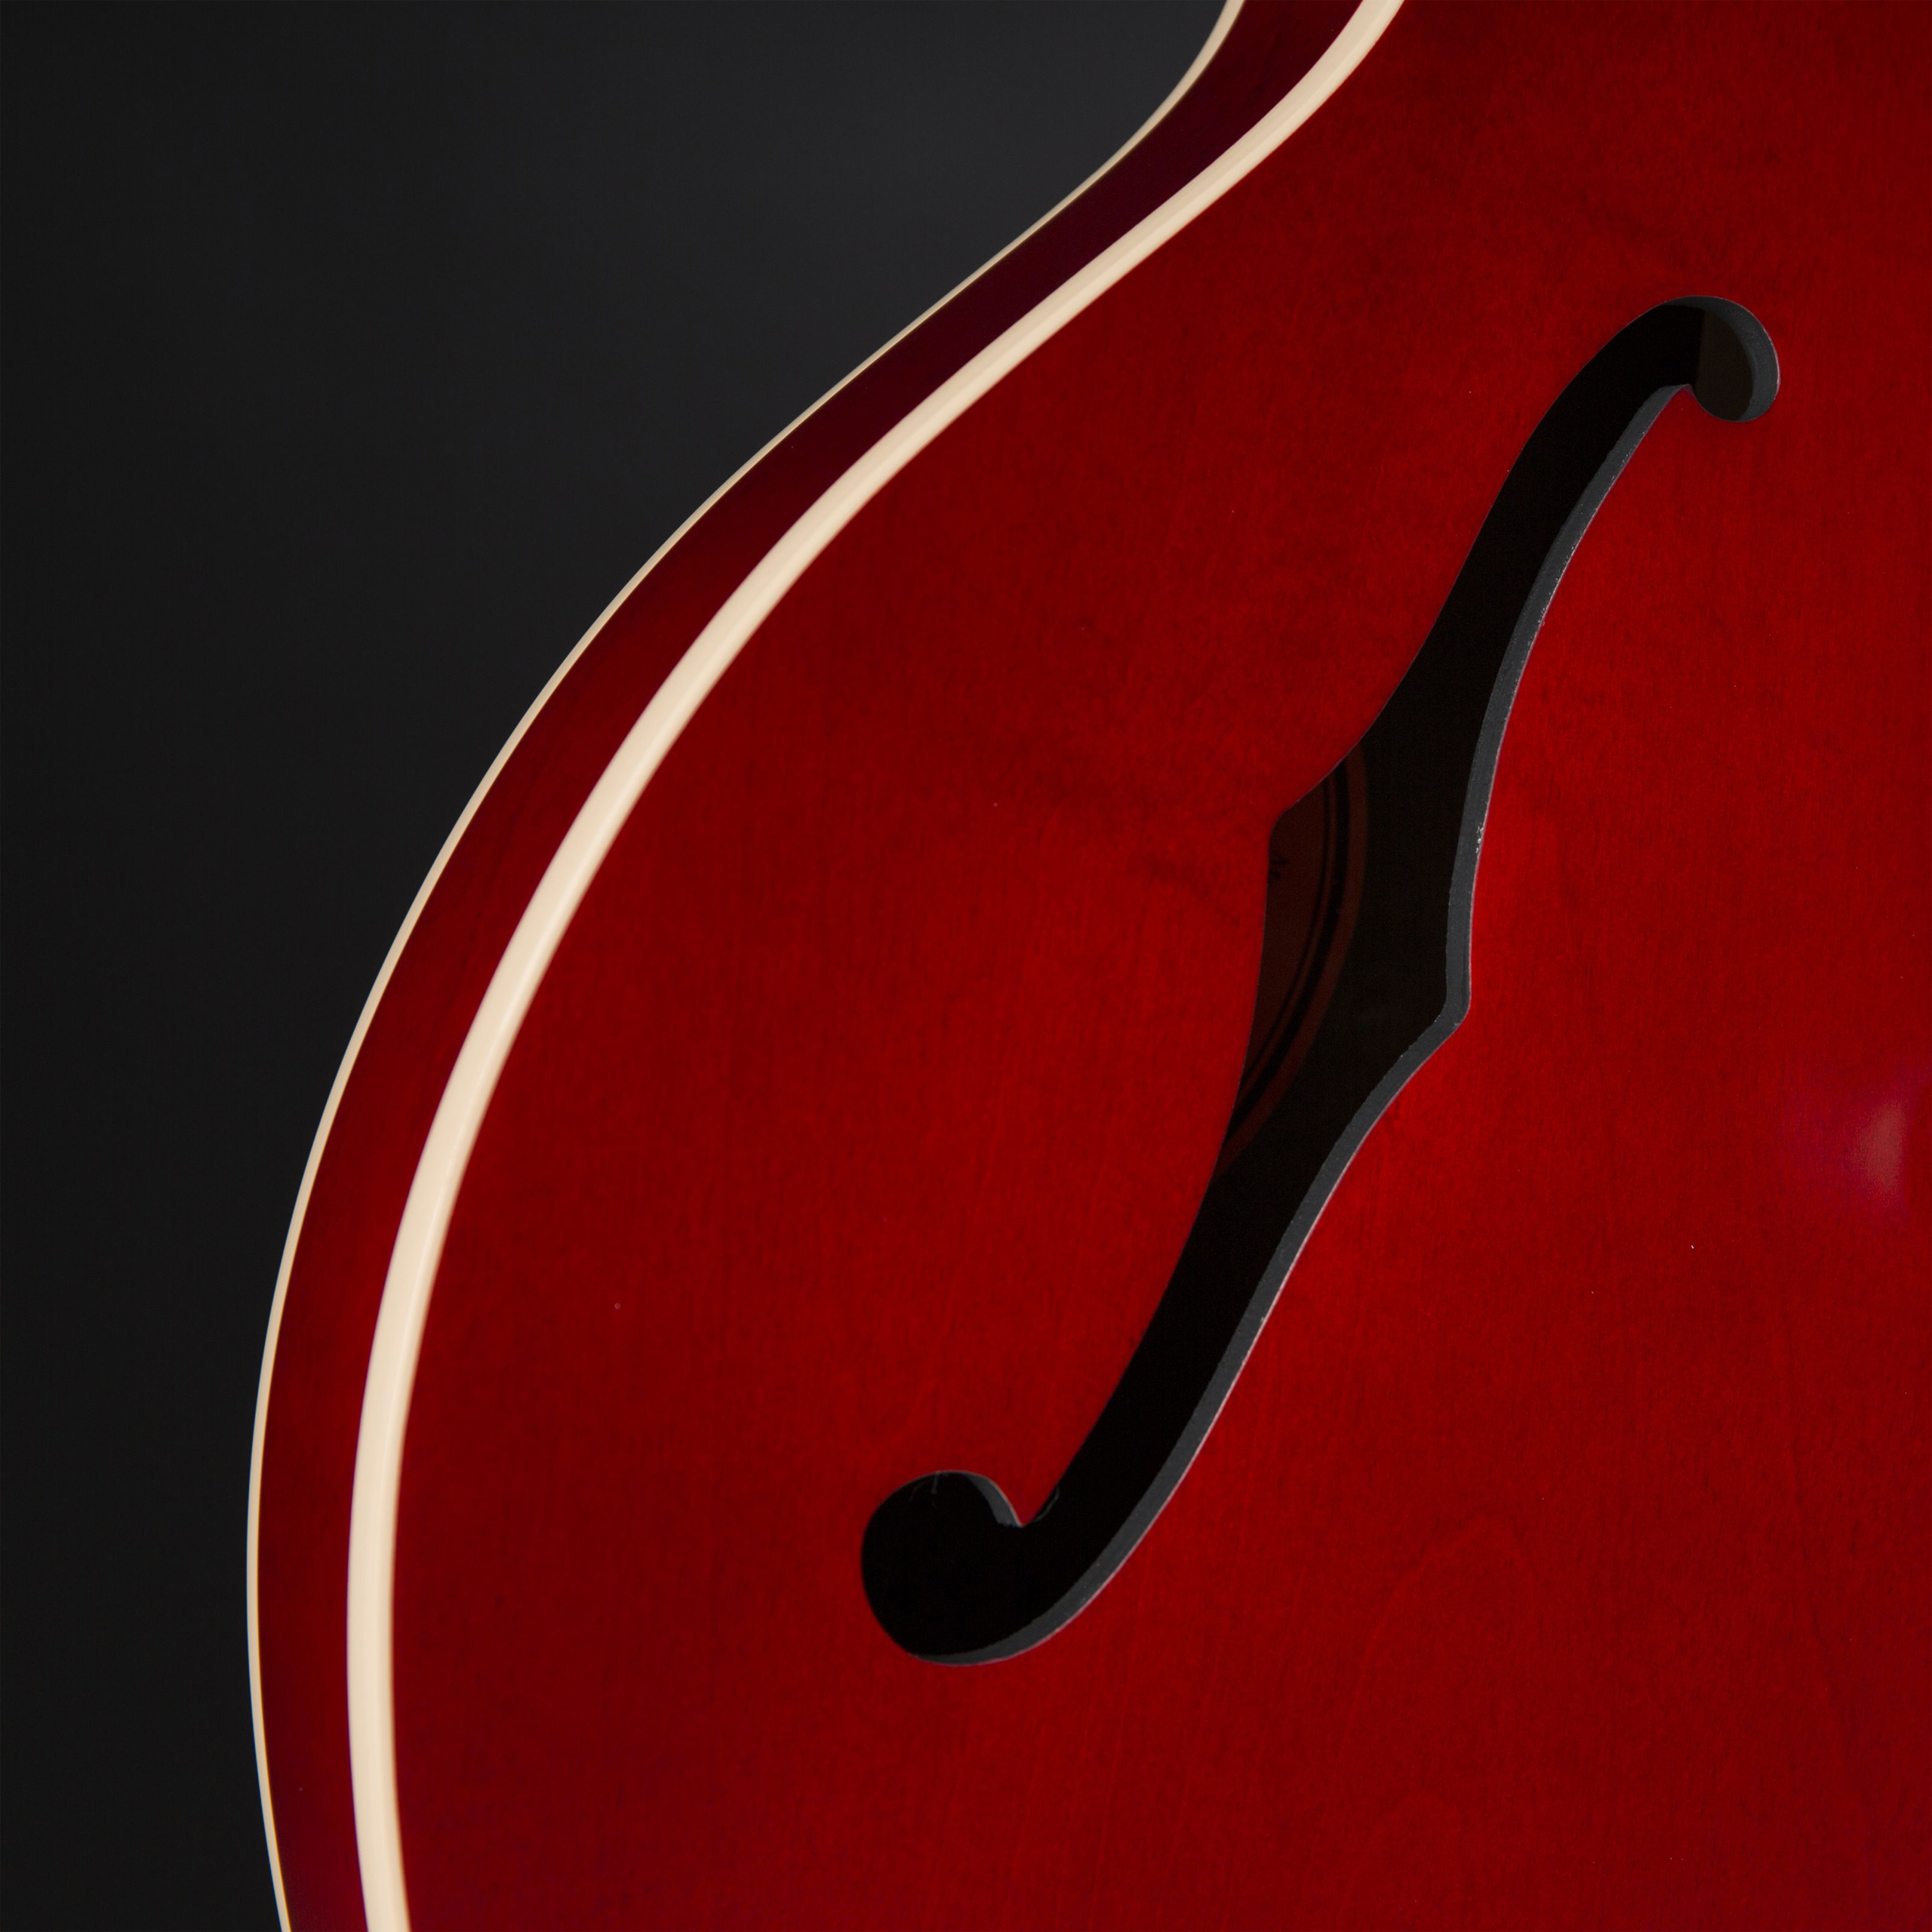 Gibson ES-335 Satin Faded Cherry #11476719 Detail